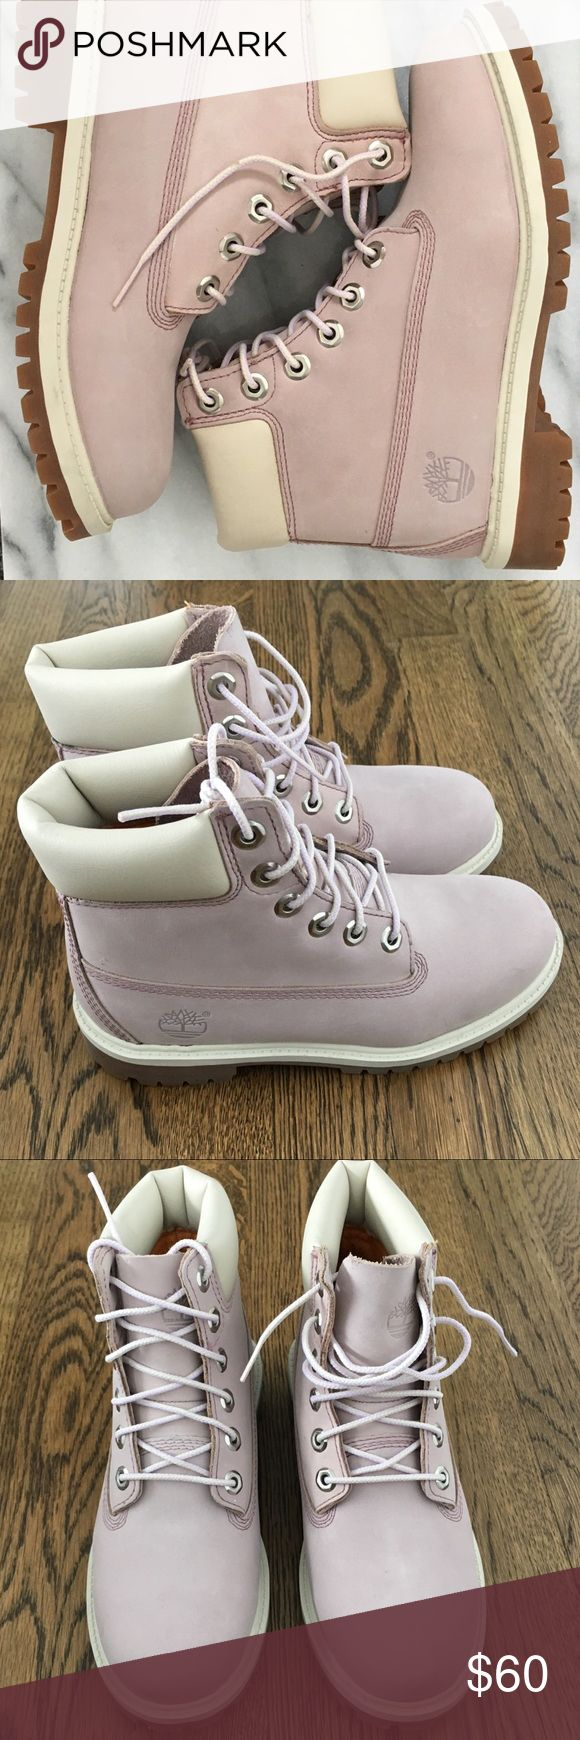 "🌸 Timberland 6"" classic boots in pale pink 🌸 Beautiful, classic Timberland 6"" boots in pretty pale pink color. NWOT or box but never worn, still with the shoe filler inside. This is JUNIORS size 4 and women's US size 5.5, EU 36. If you like the item but not the price, feel free to make an offer ☺️ No lowball offers please. Timberland Shoes Combat & Moto Boots"